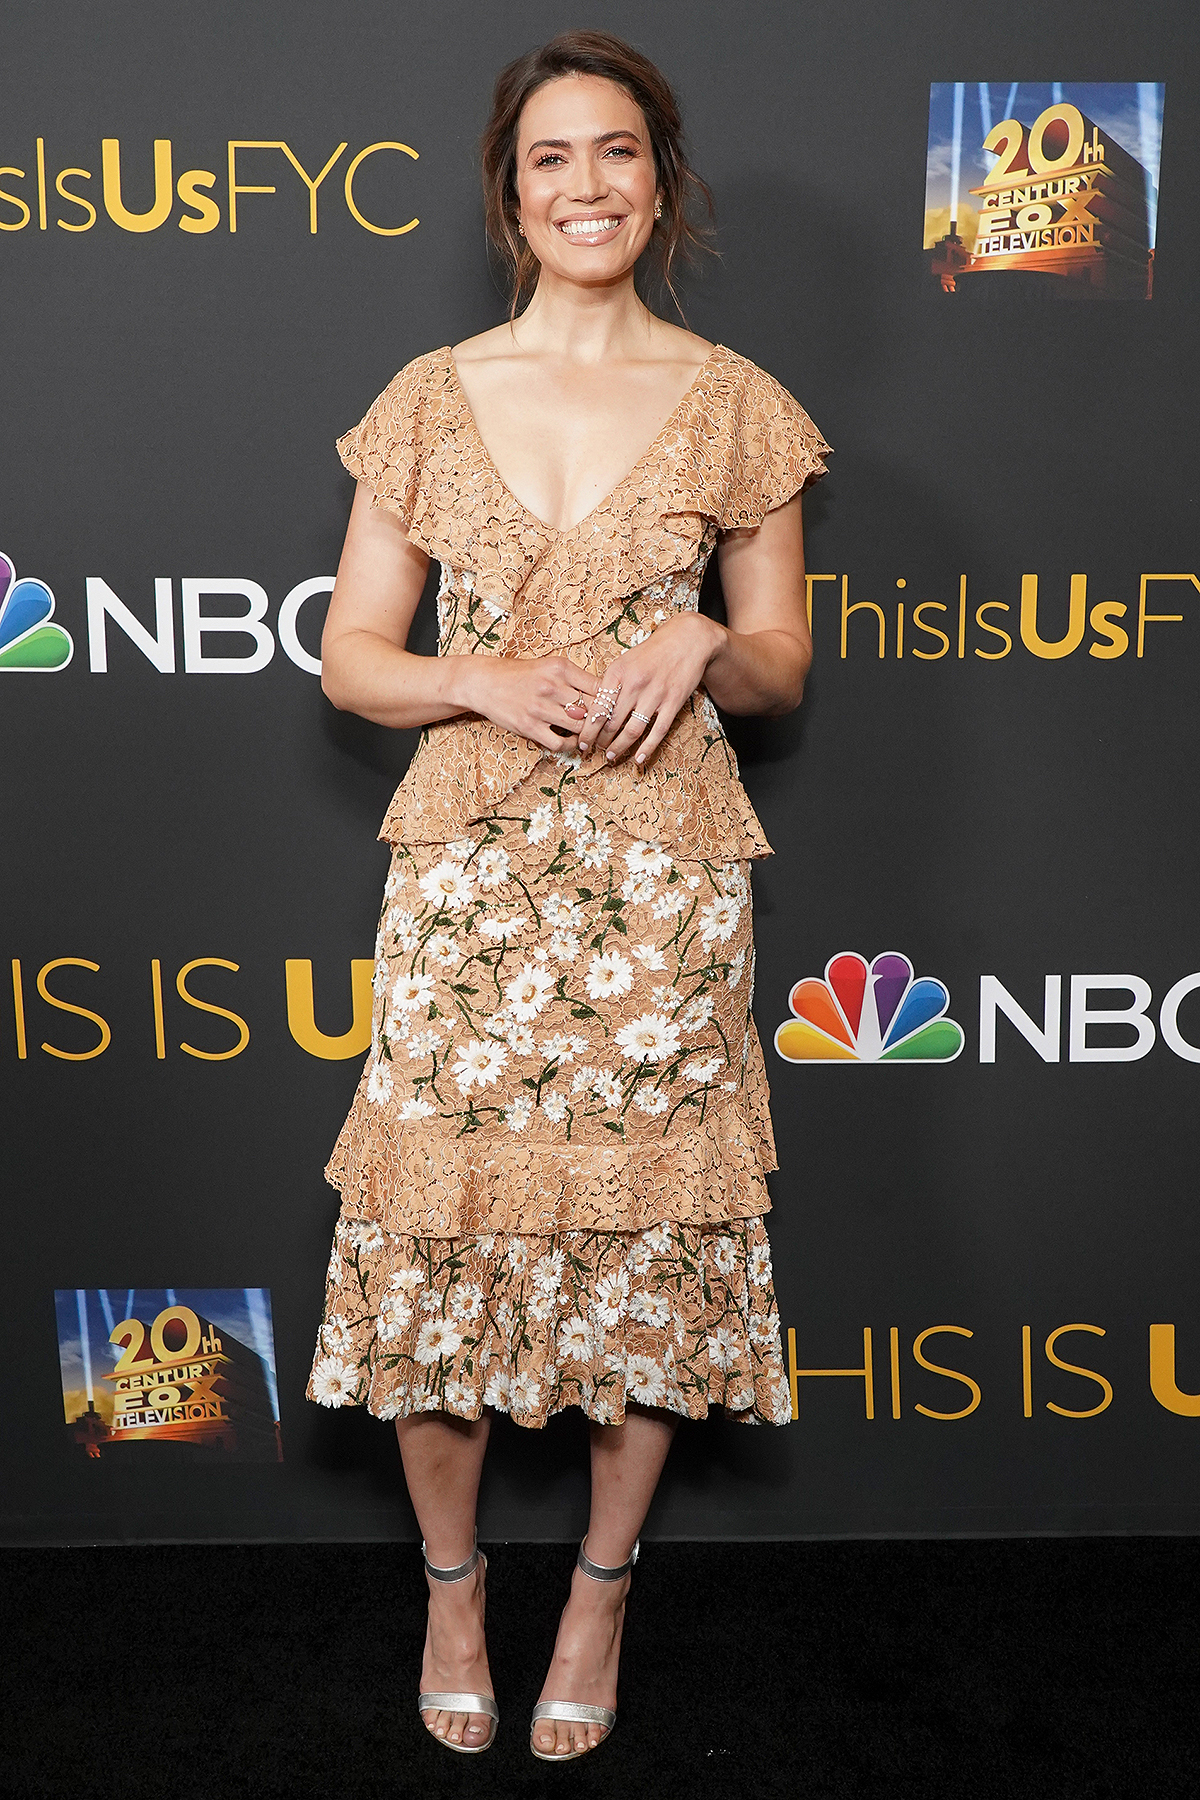 """20th Century Fox Television And NBC Present """"This Is Us"""" FYC Event"""